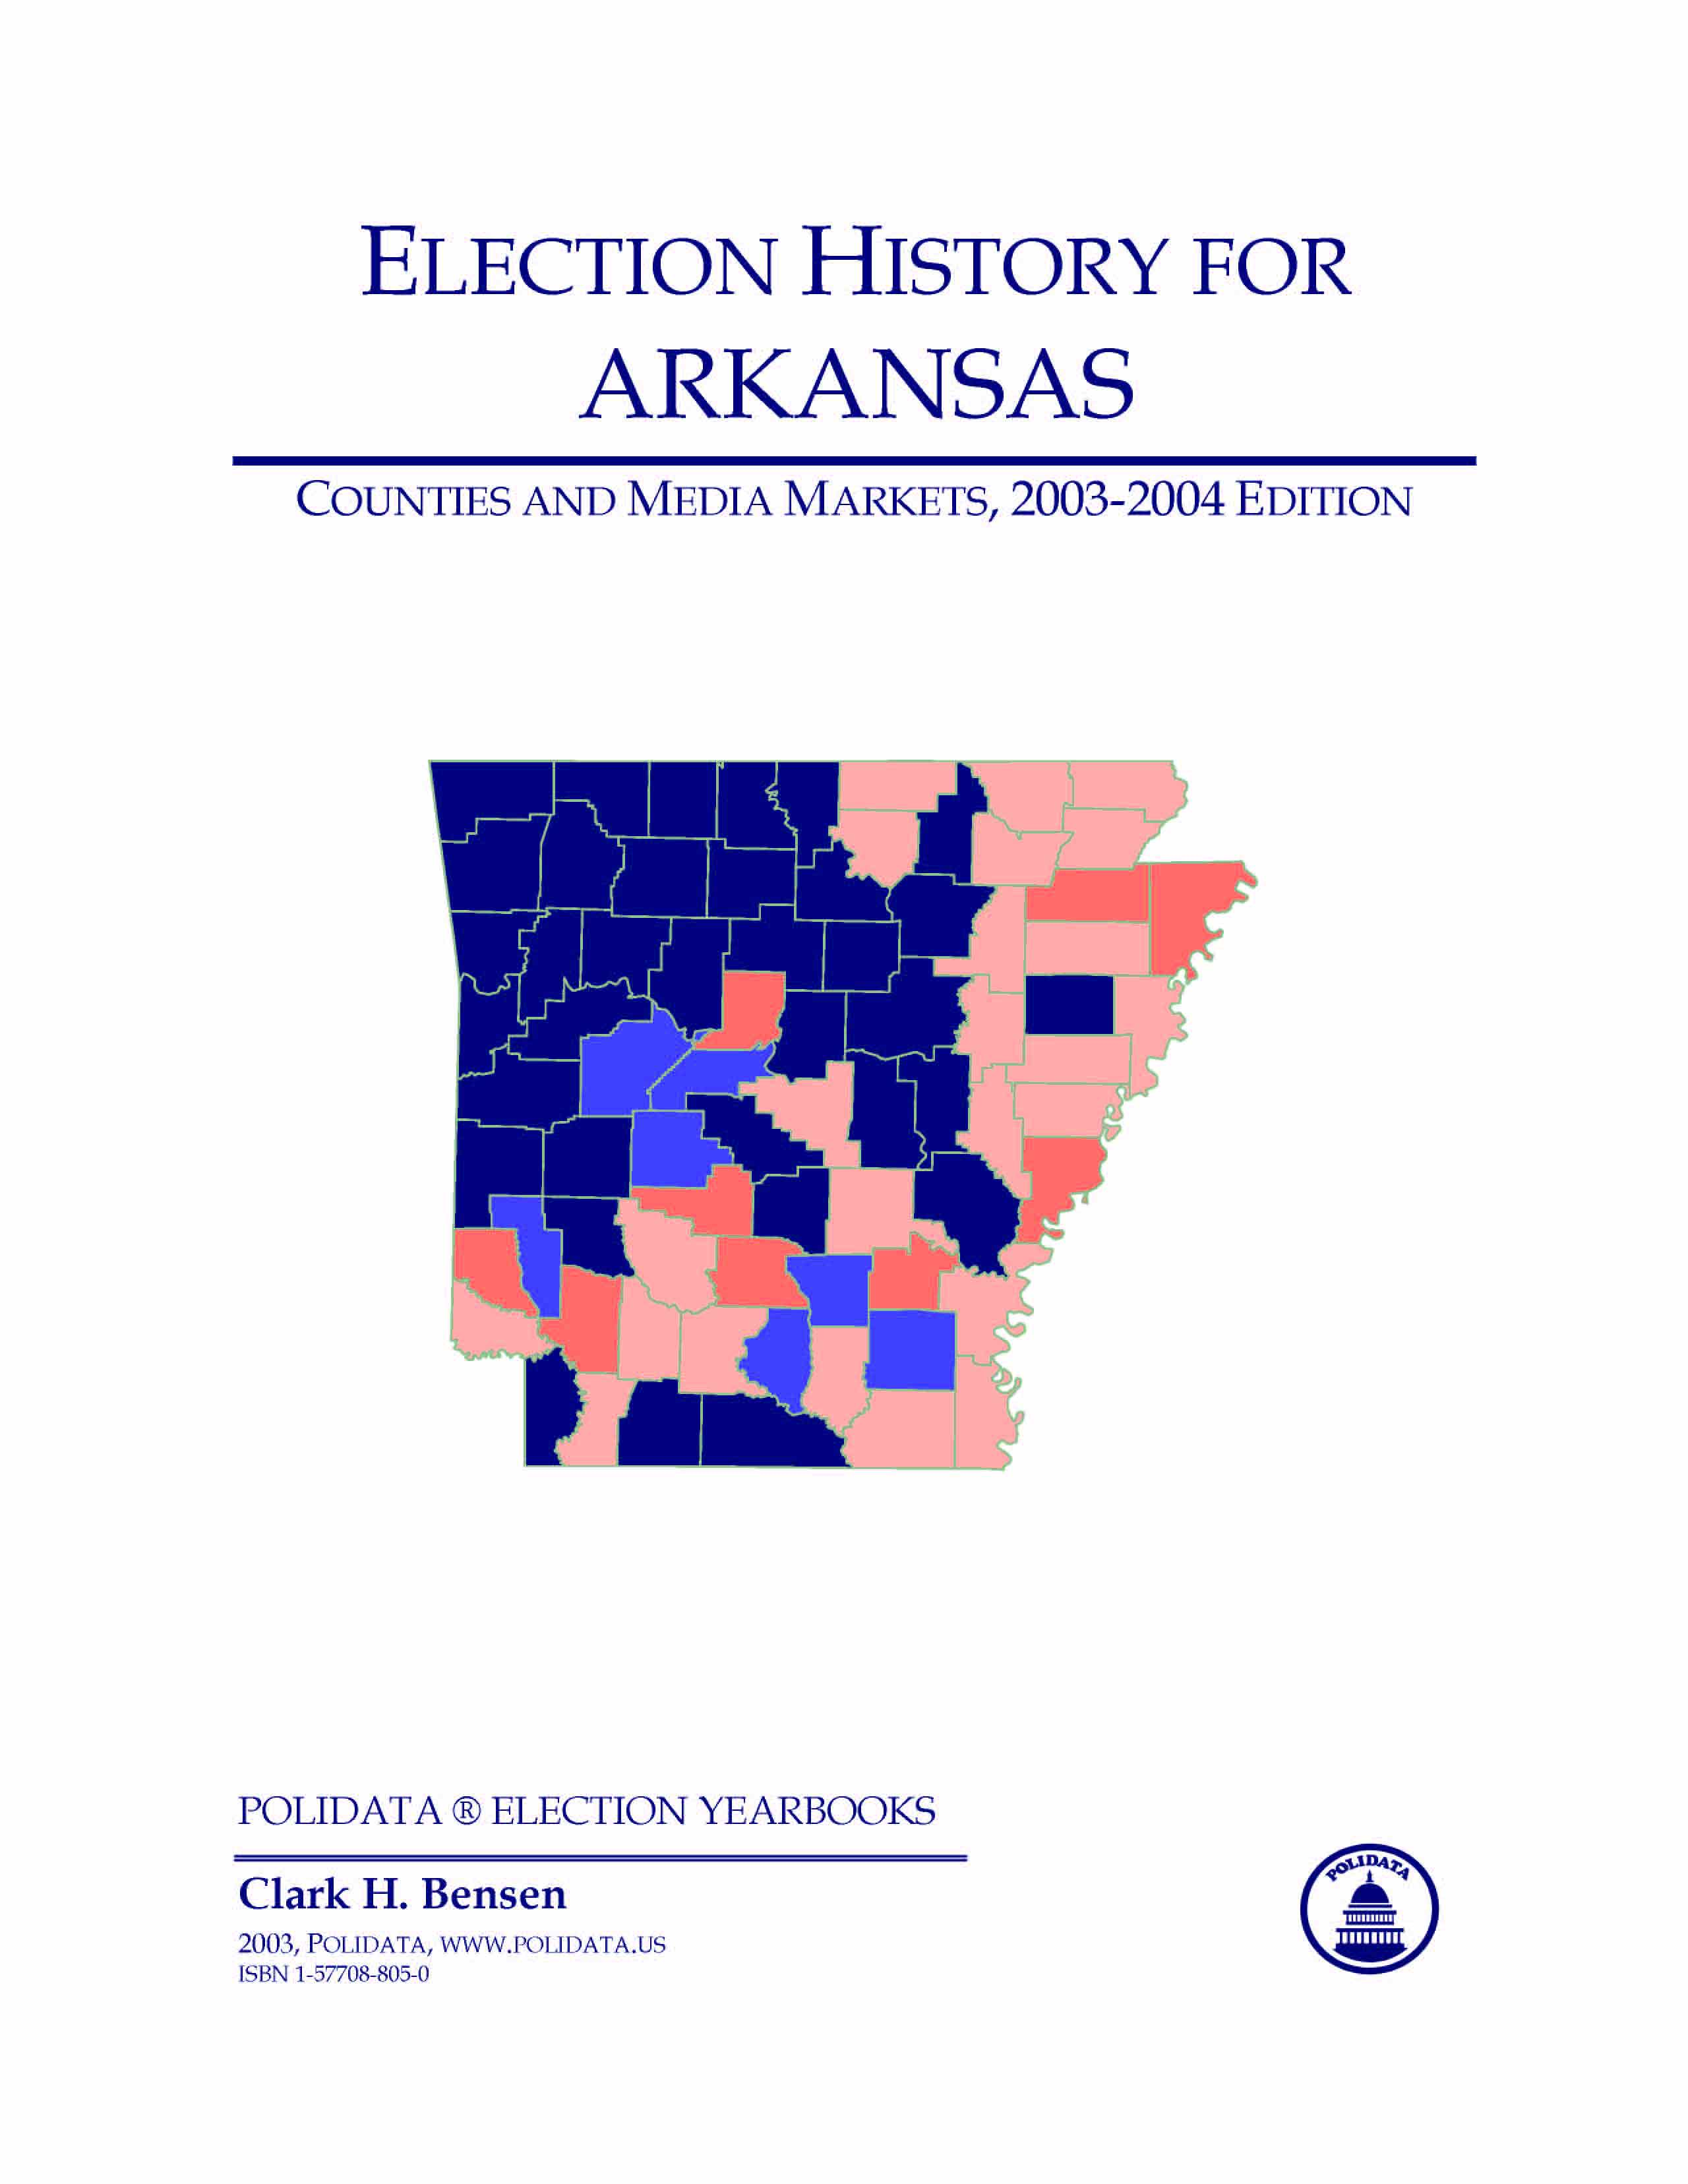 POLIDATA  ARKANSAS ELECTION HISTORY Bibliographic Info